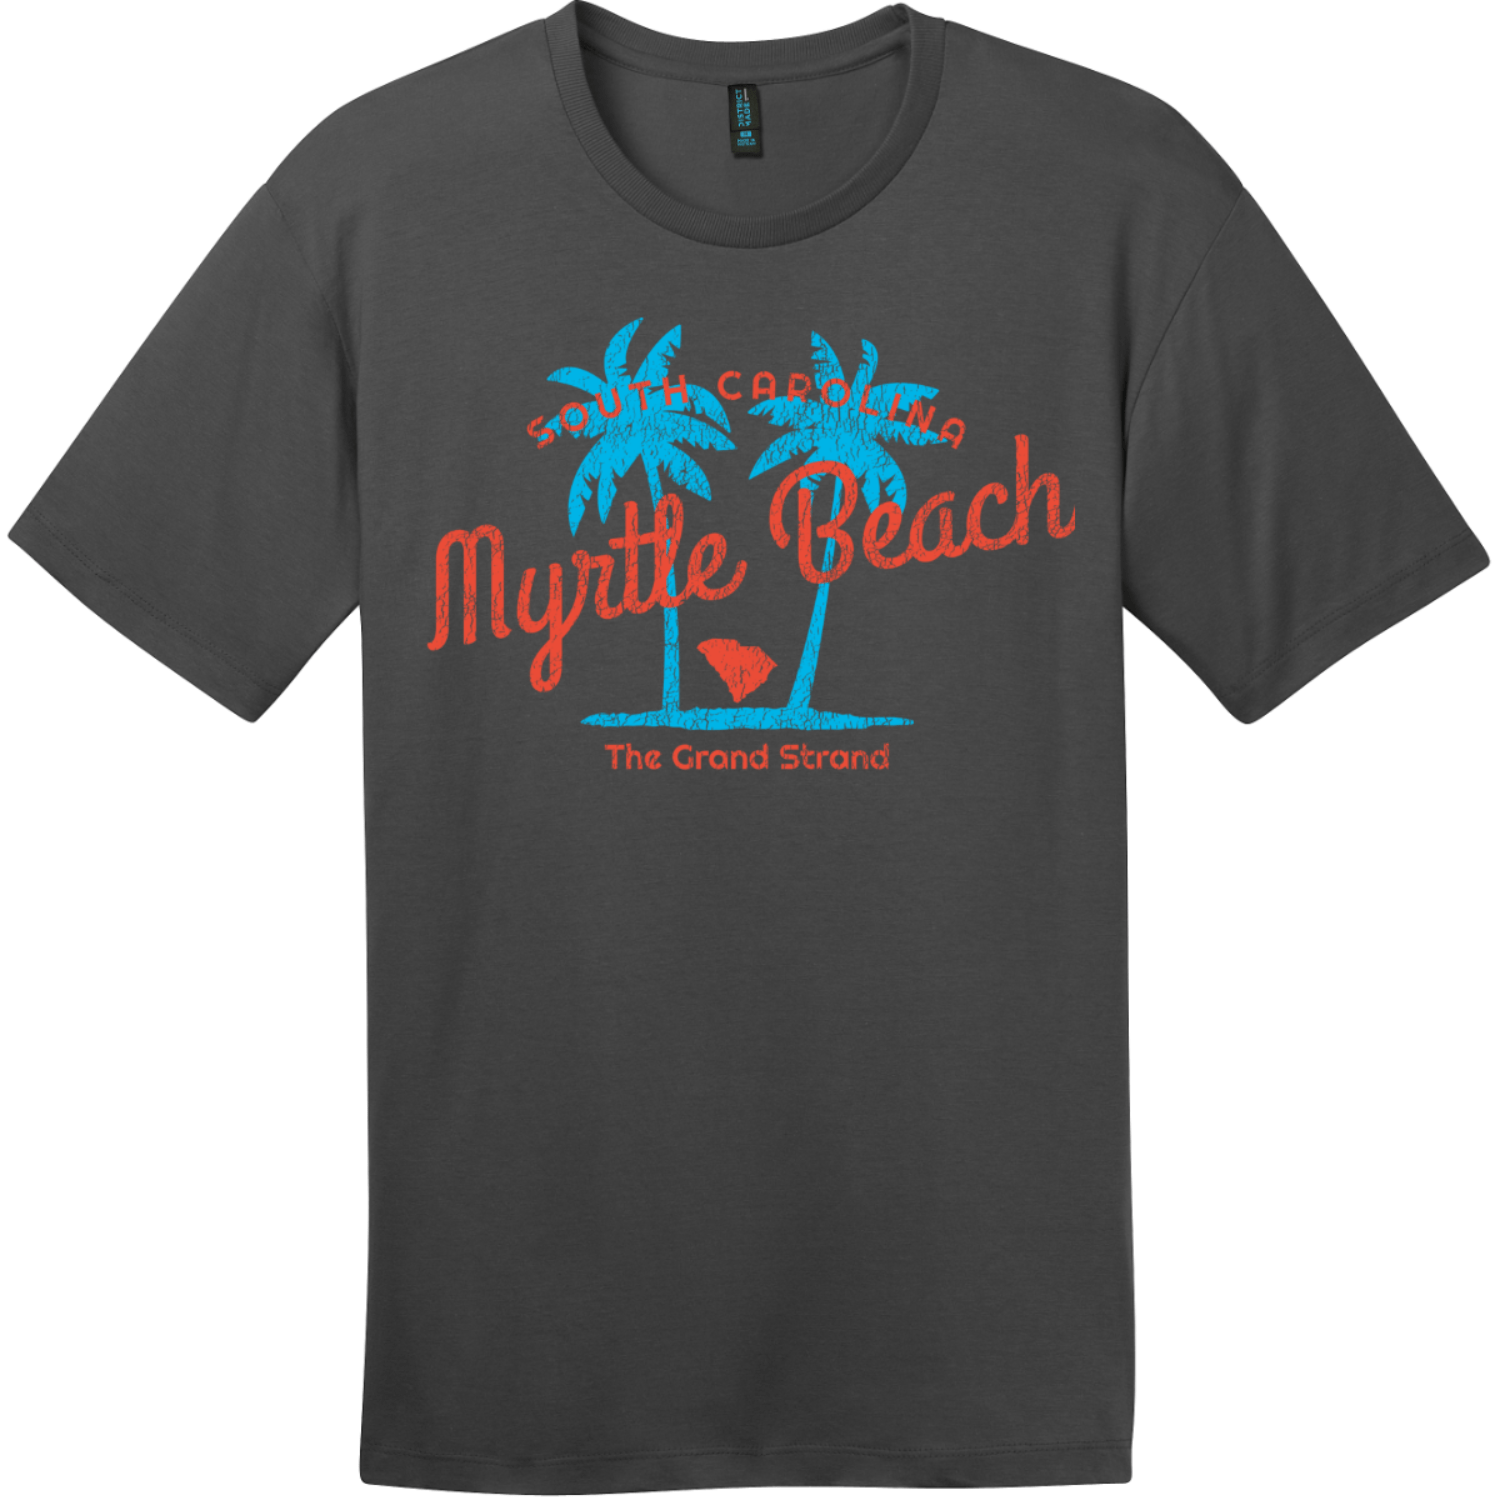 Myrtle Beach The Grand Strand T-Shirt Charcoal District Perfect Weight Tee DT104